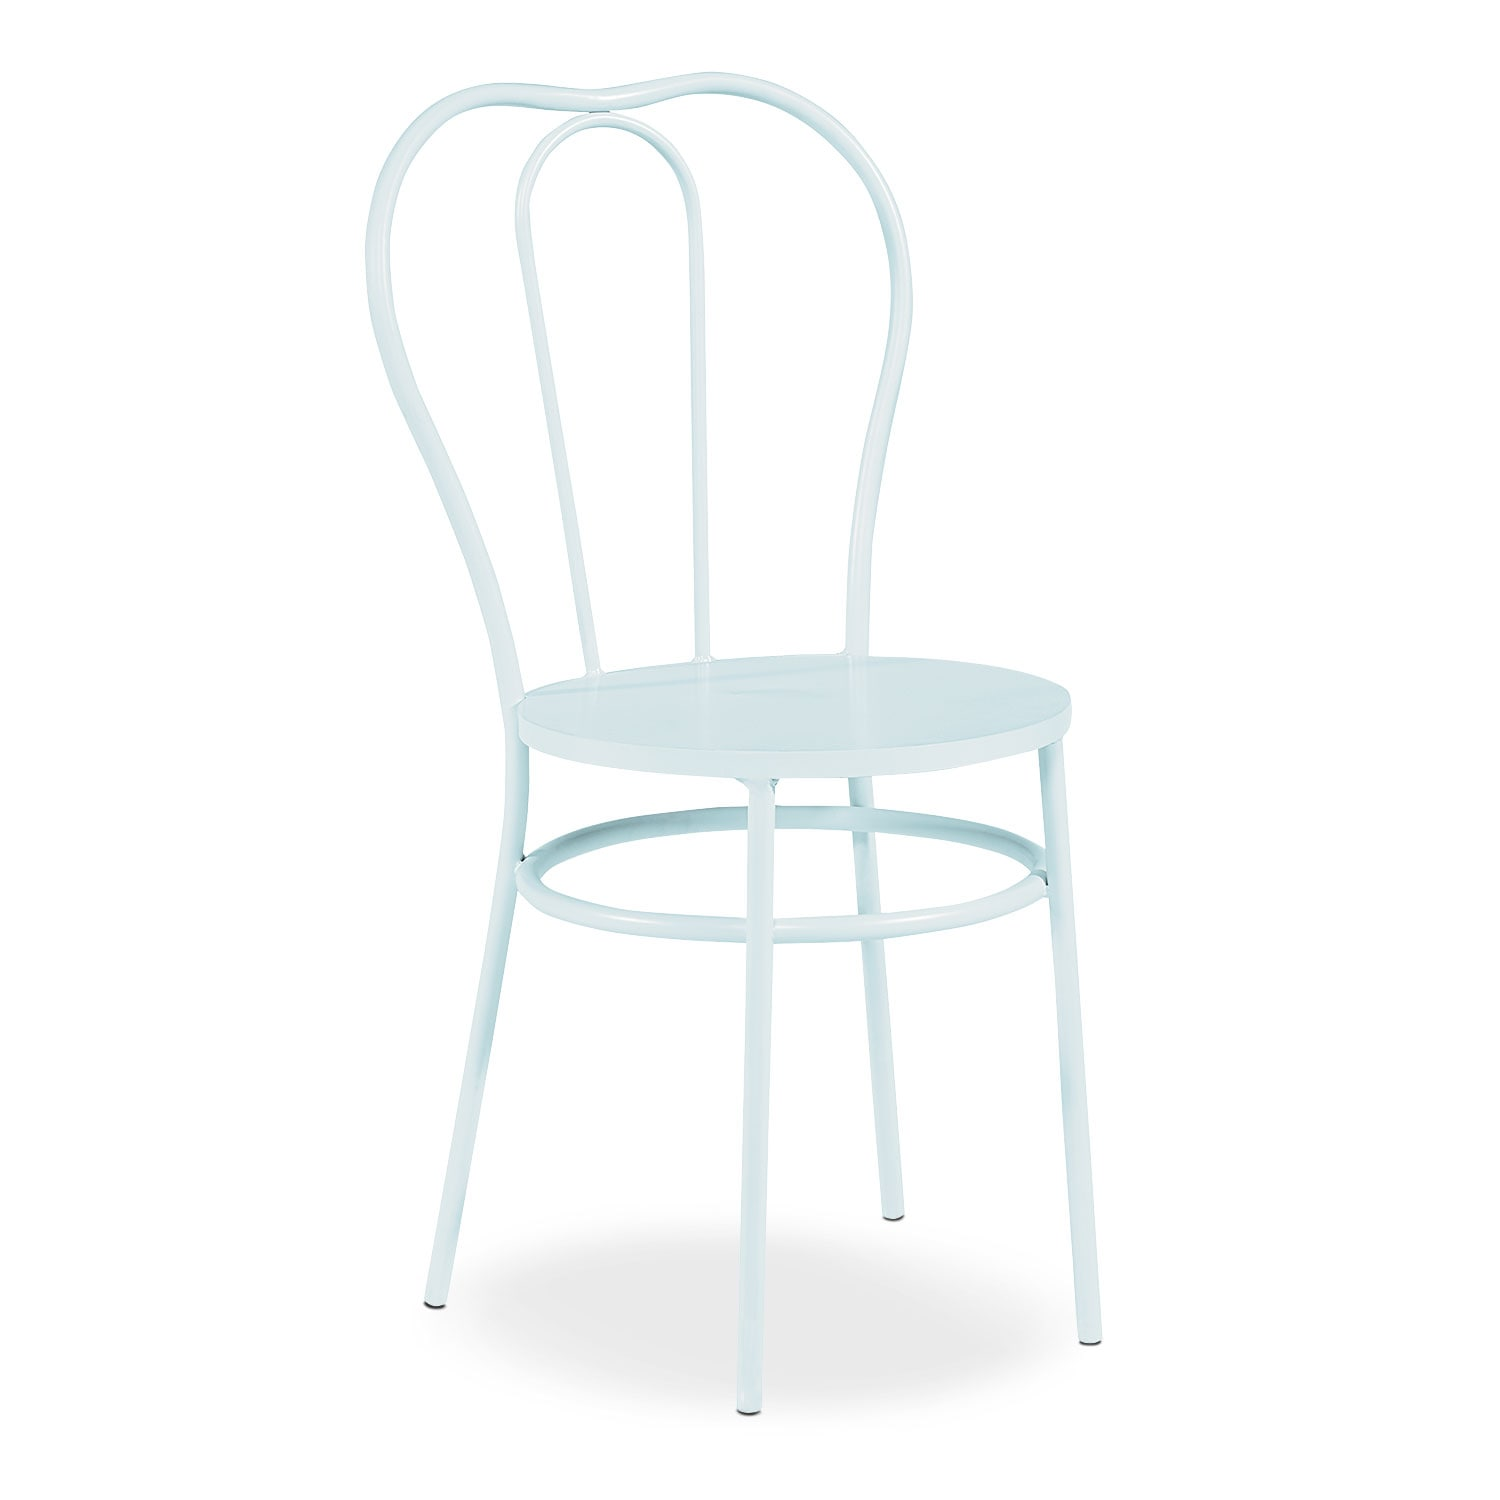 Bistro Chair - White